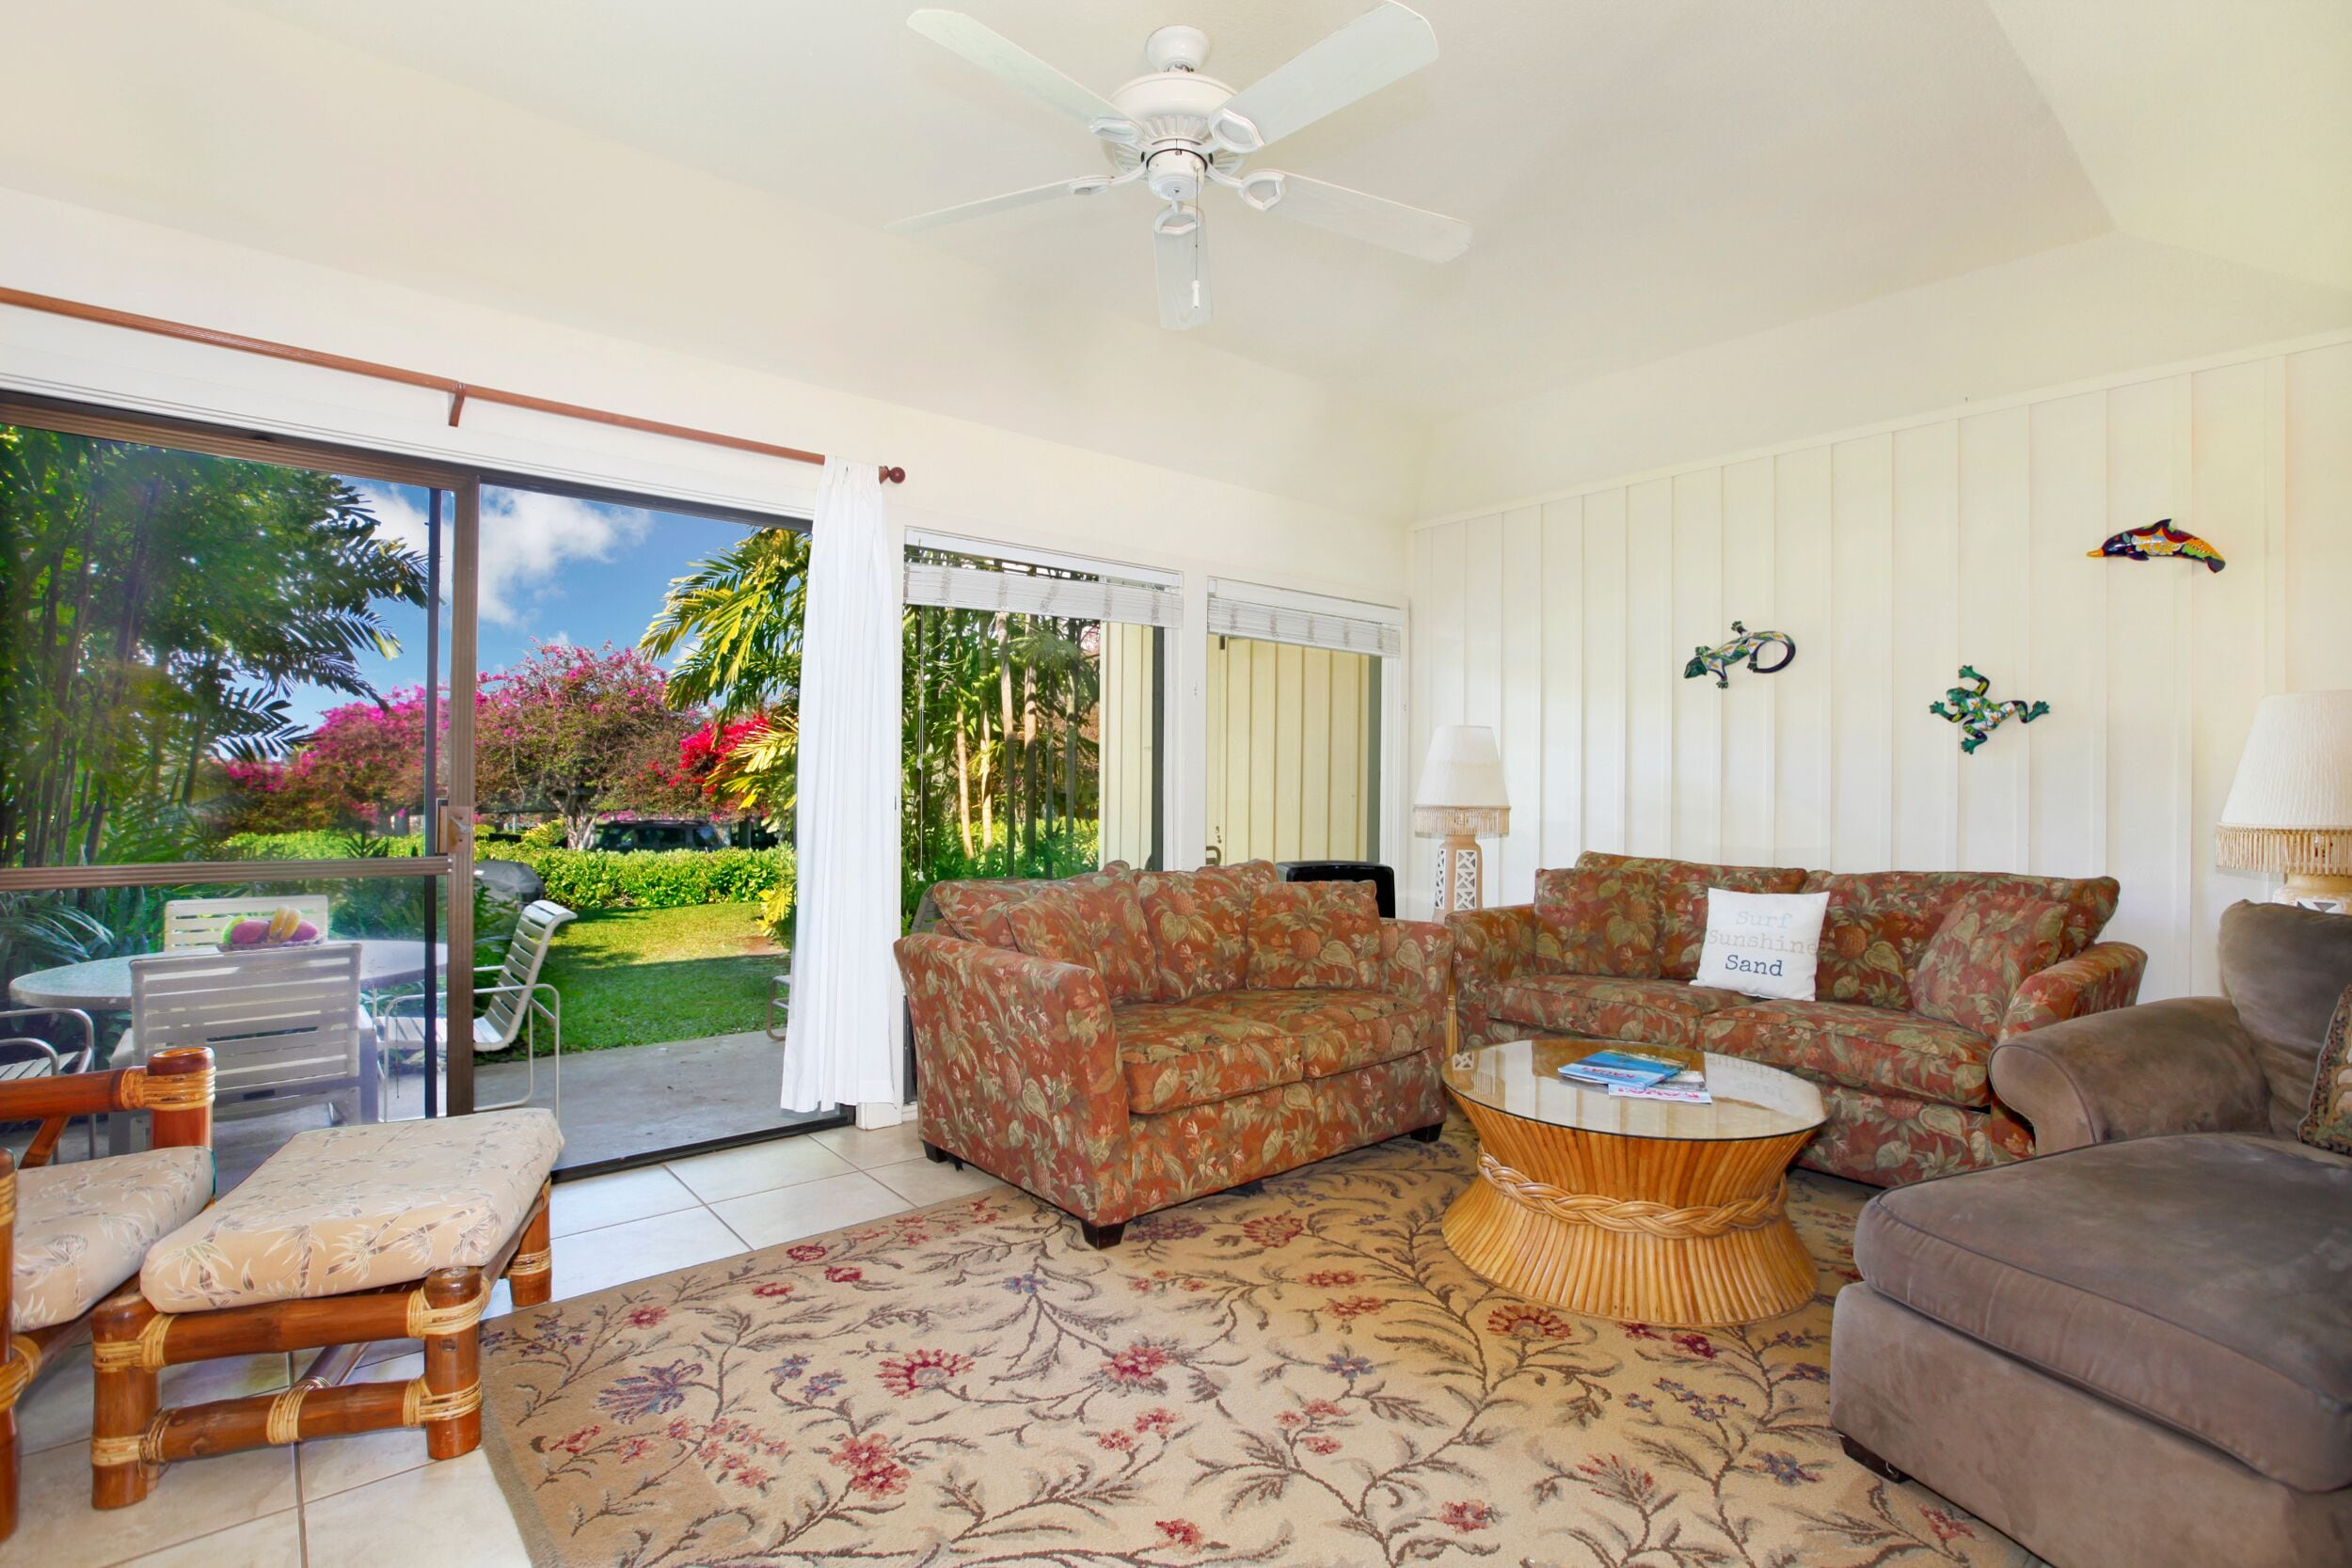 Property Image 1 - Relaxing Hawaiian Sanctuary Just Minutes from Beautiful Poipu Beaches